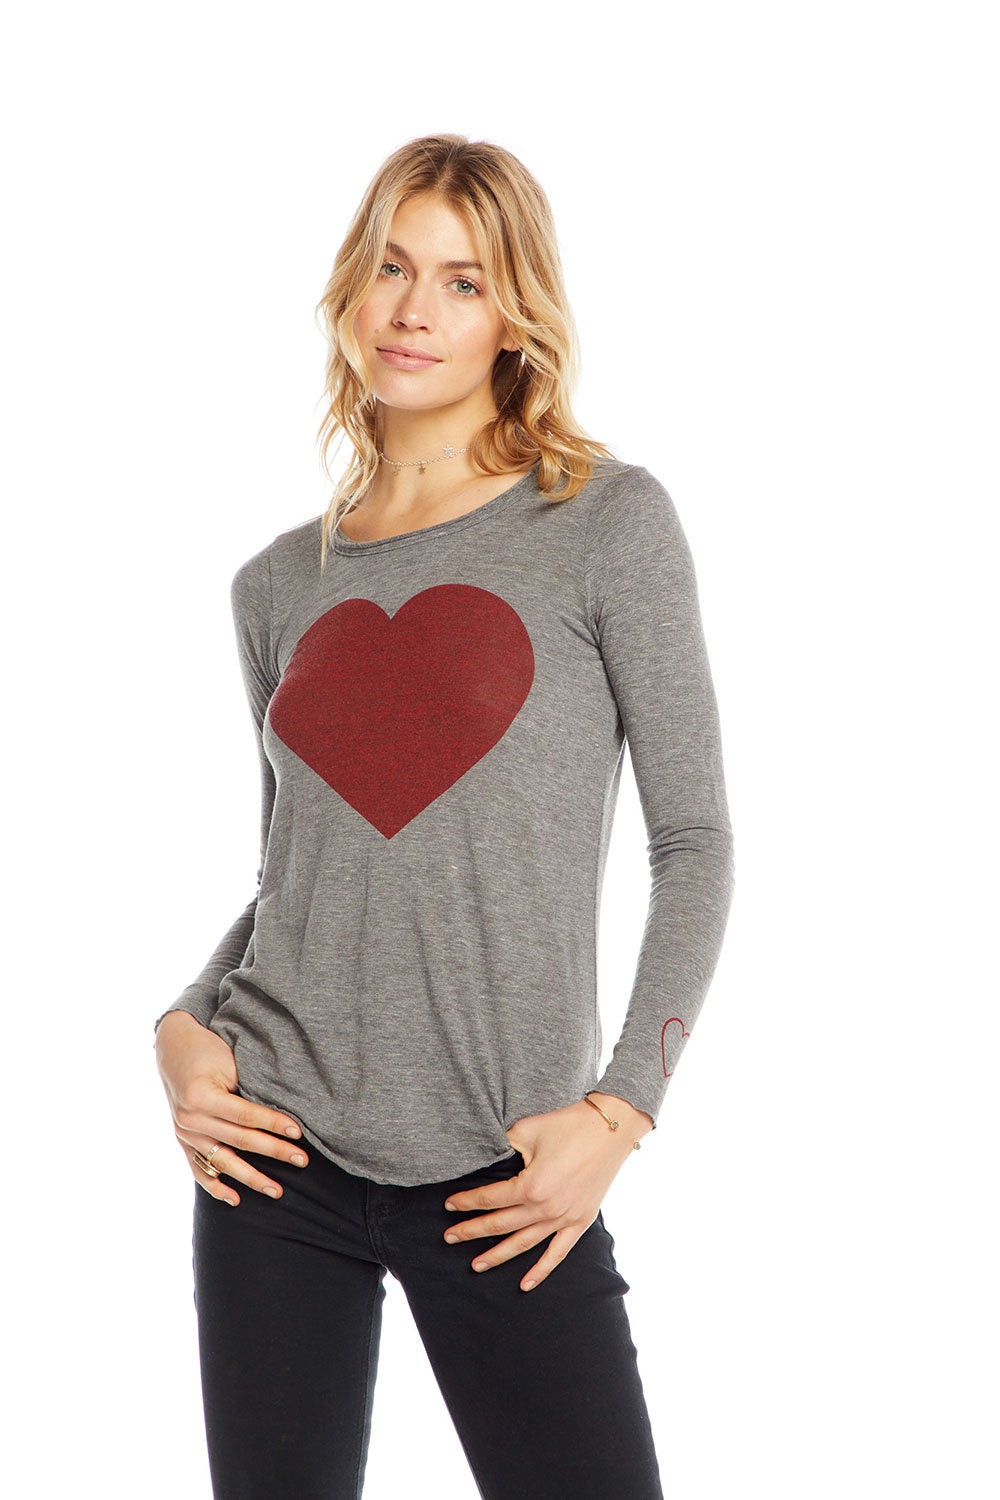 6da15e494545 True Heart, WOMENS, chaserbrand.com,chaser clothing,chaser apparel,chaser